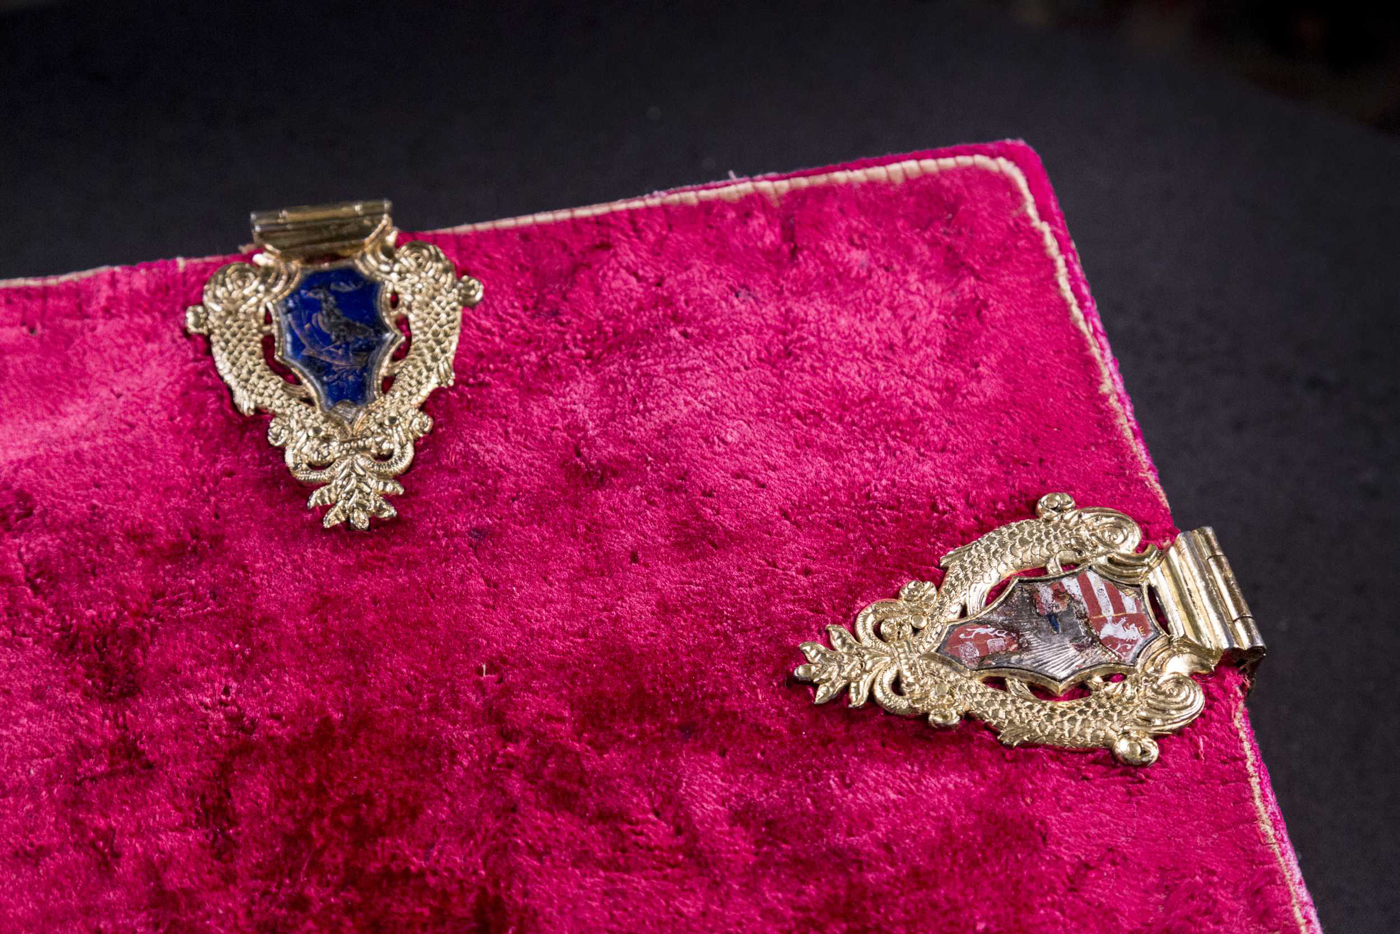 Velvet bindings made in Buda occasionally featured gilded silver clasps, decorated with enamel inlay, just like in the case of Augustinus corvina. Budapest, NSZL, OSZK Cod. Lat. 121.